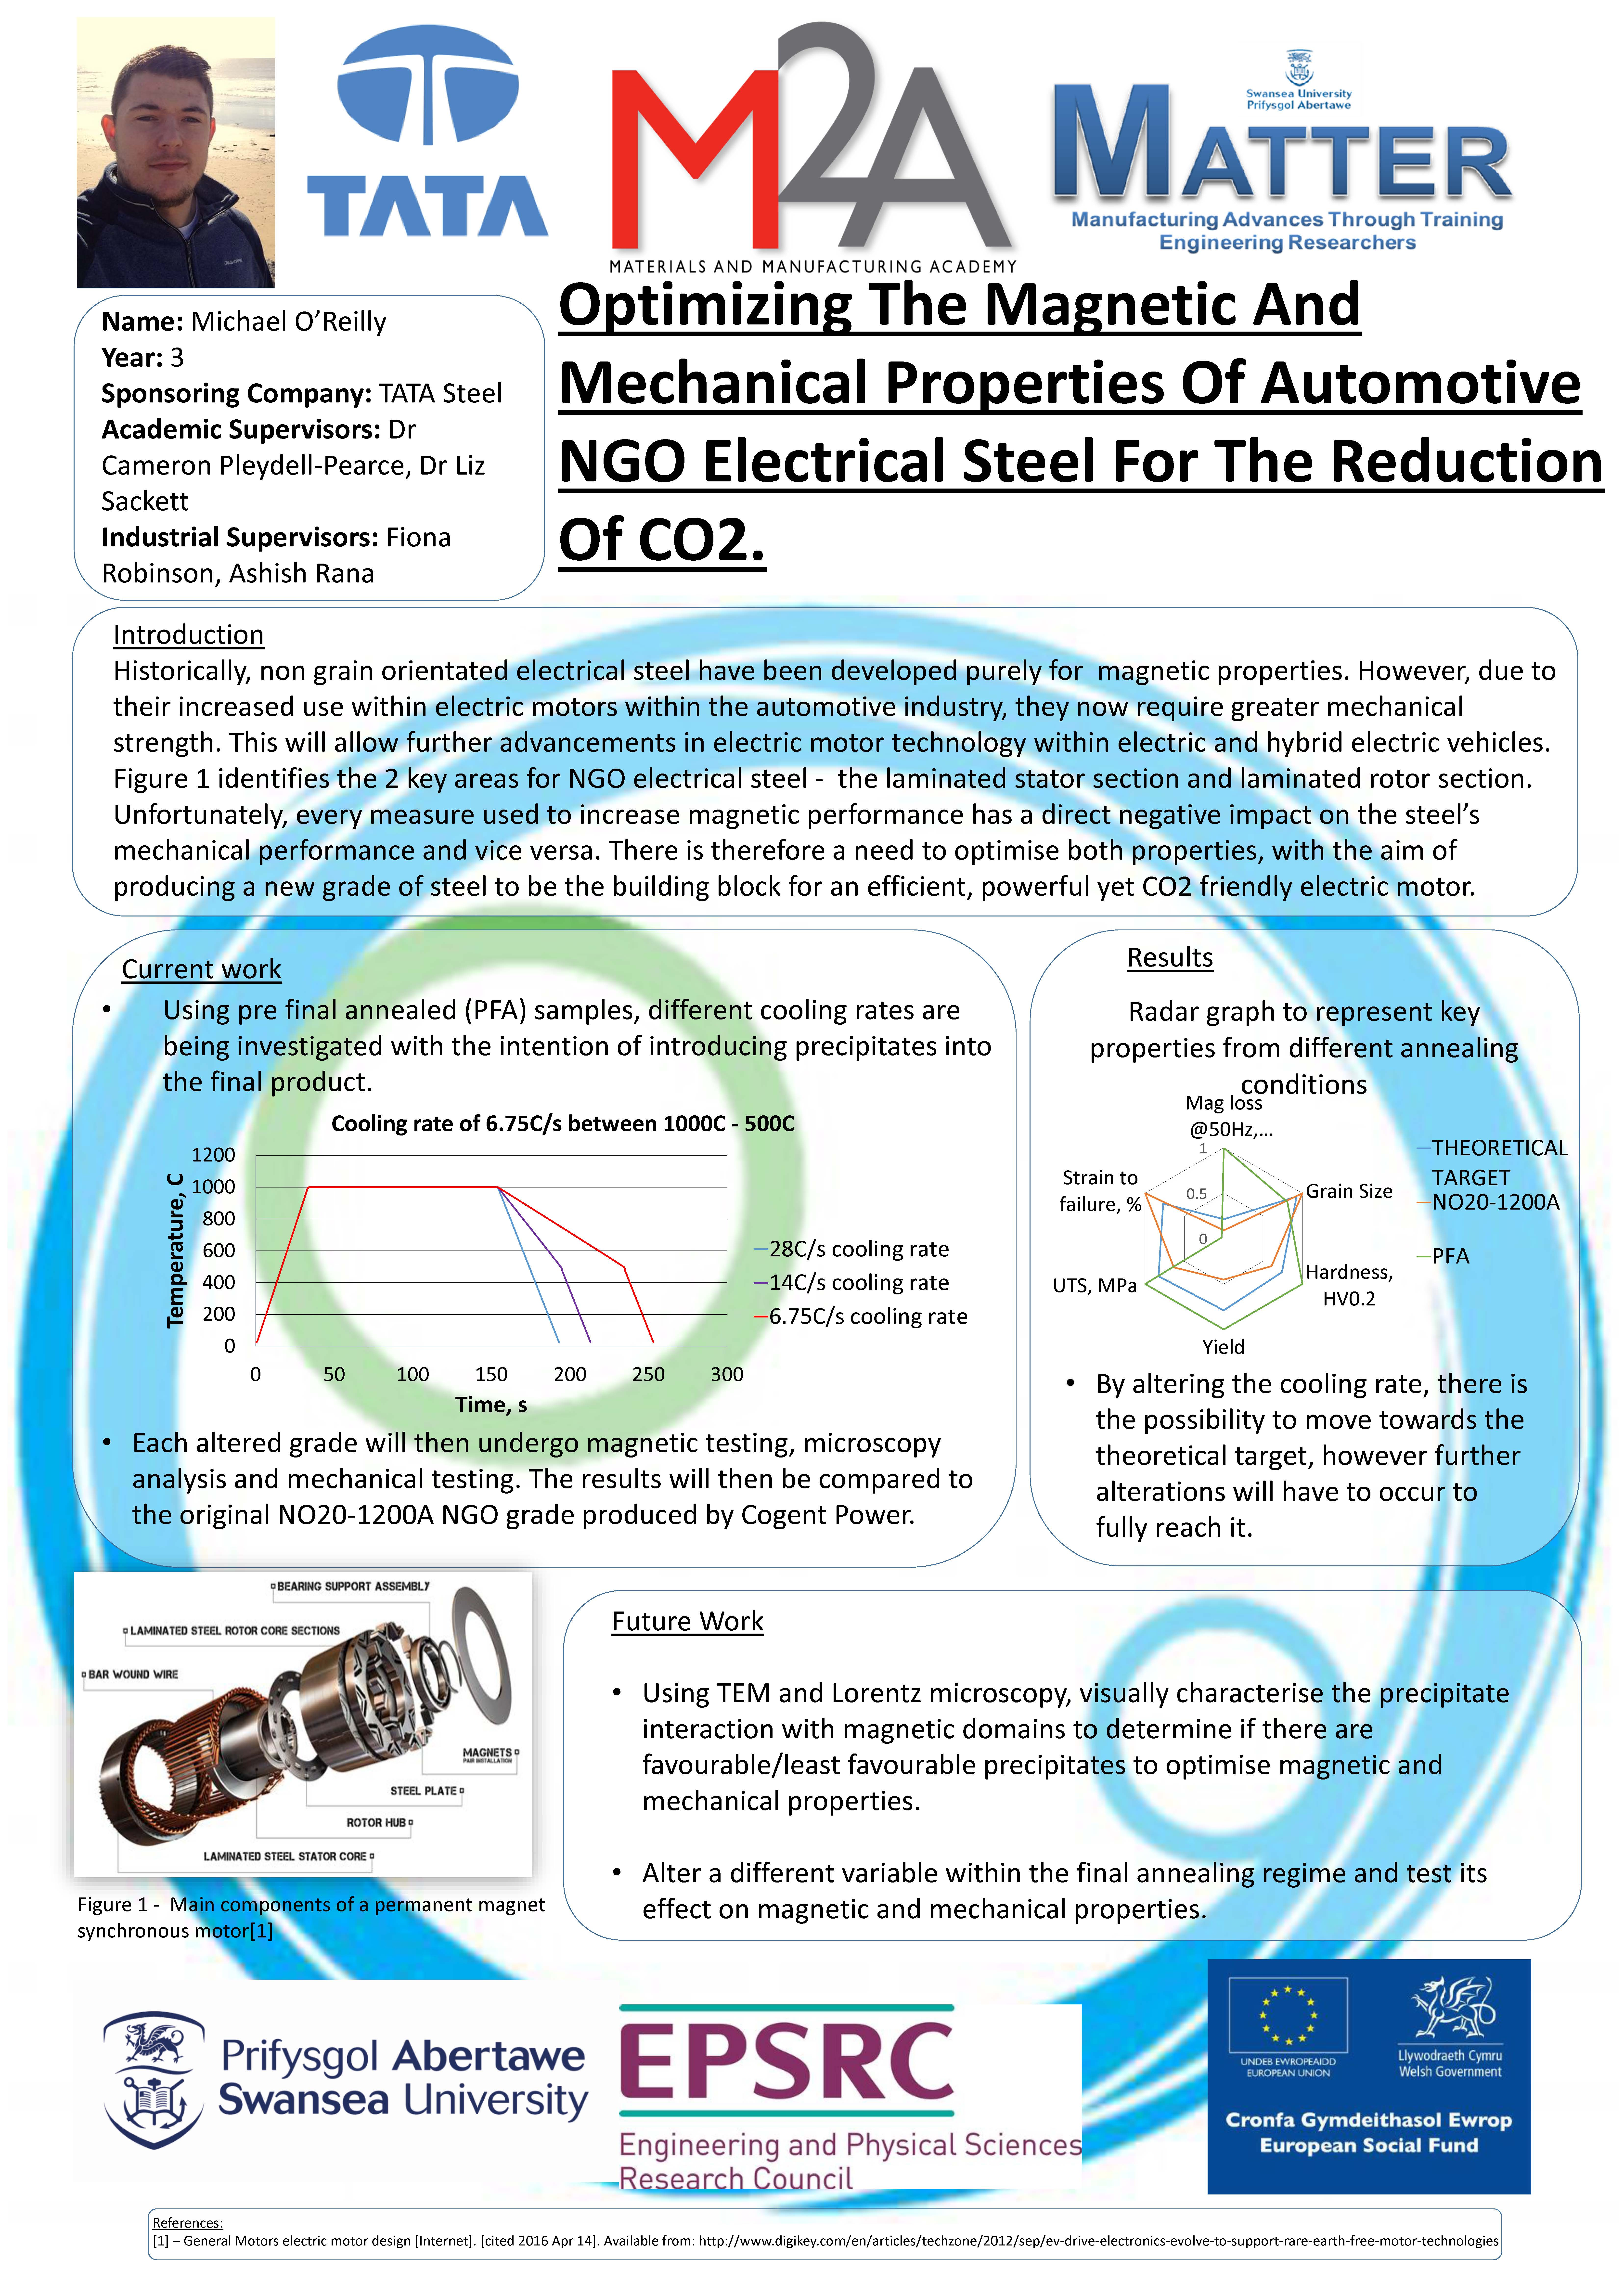 Optimizing The Magnetic And Mechanical Properties Of Automotive NGO Electrical Steel For The Reduction Of CO2.